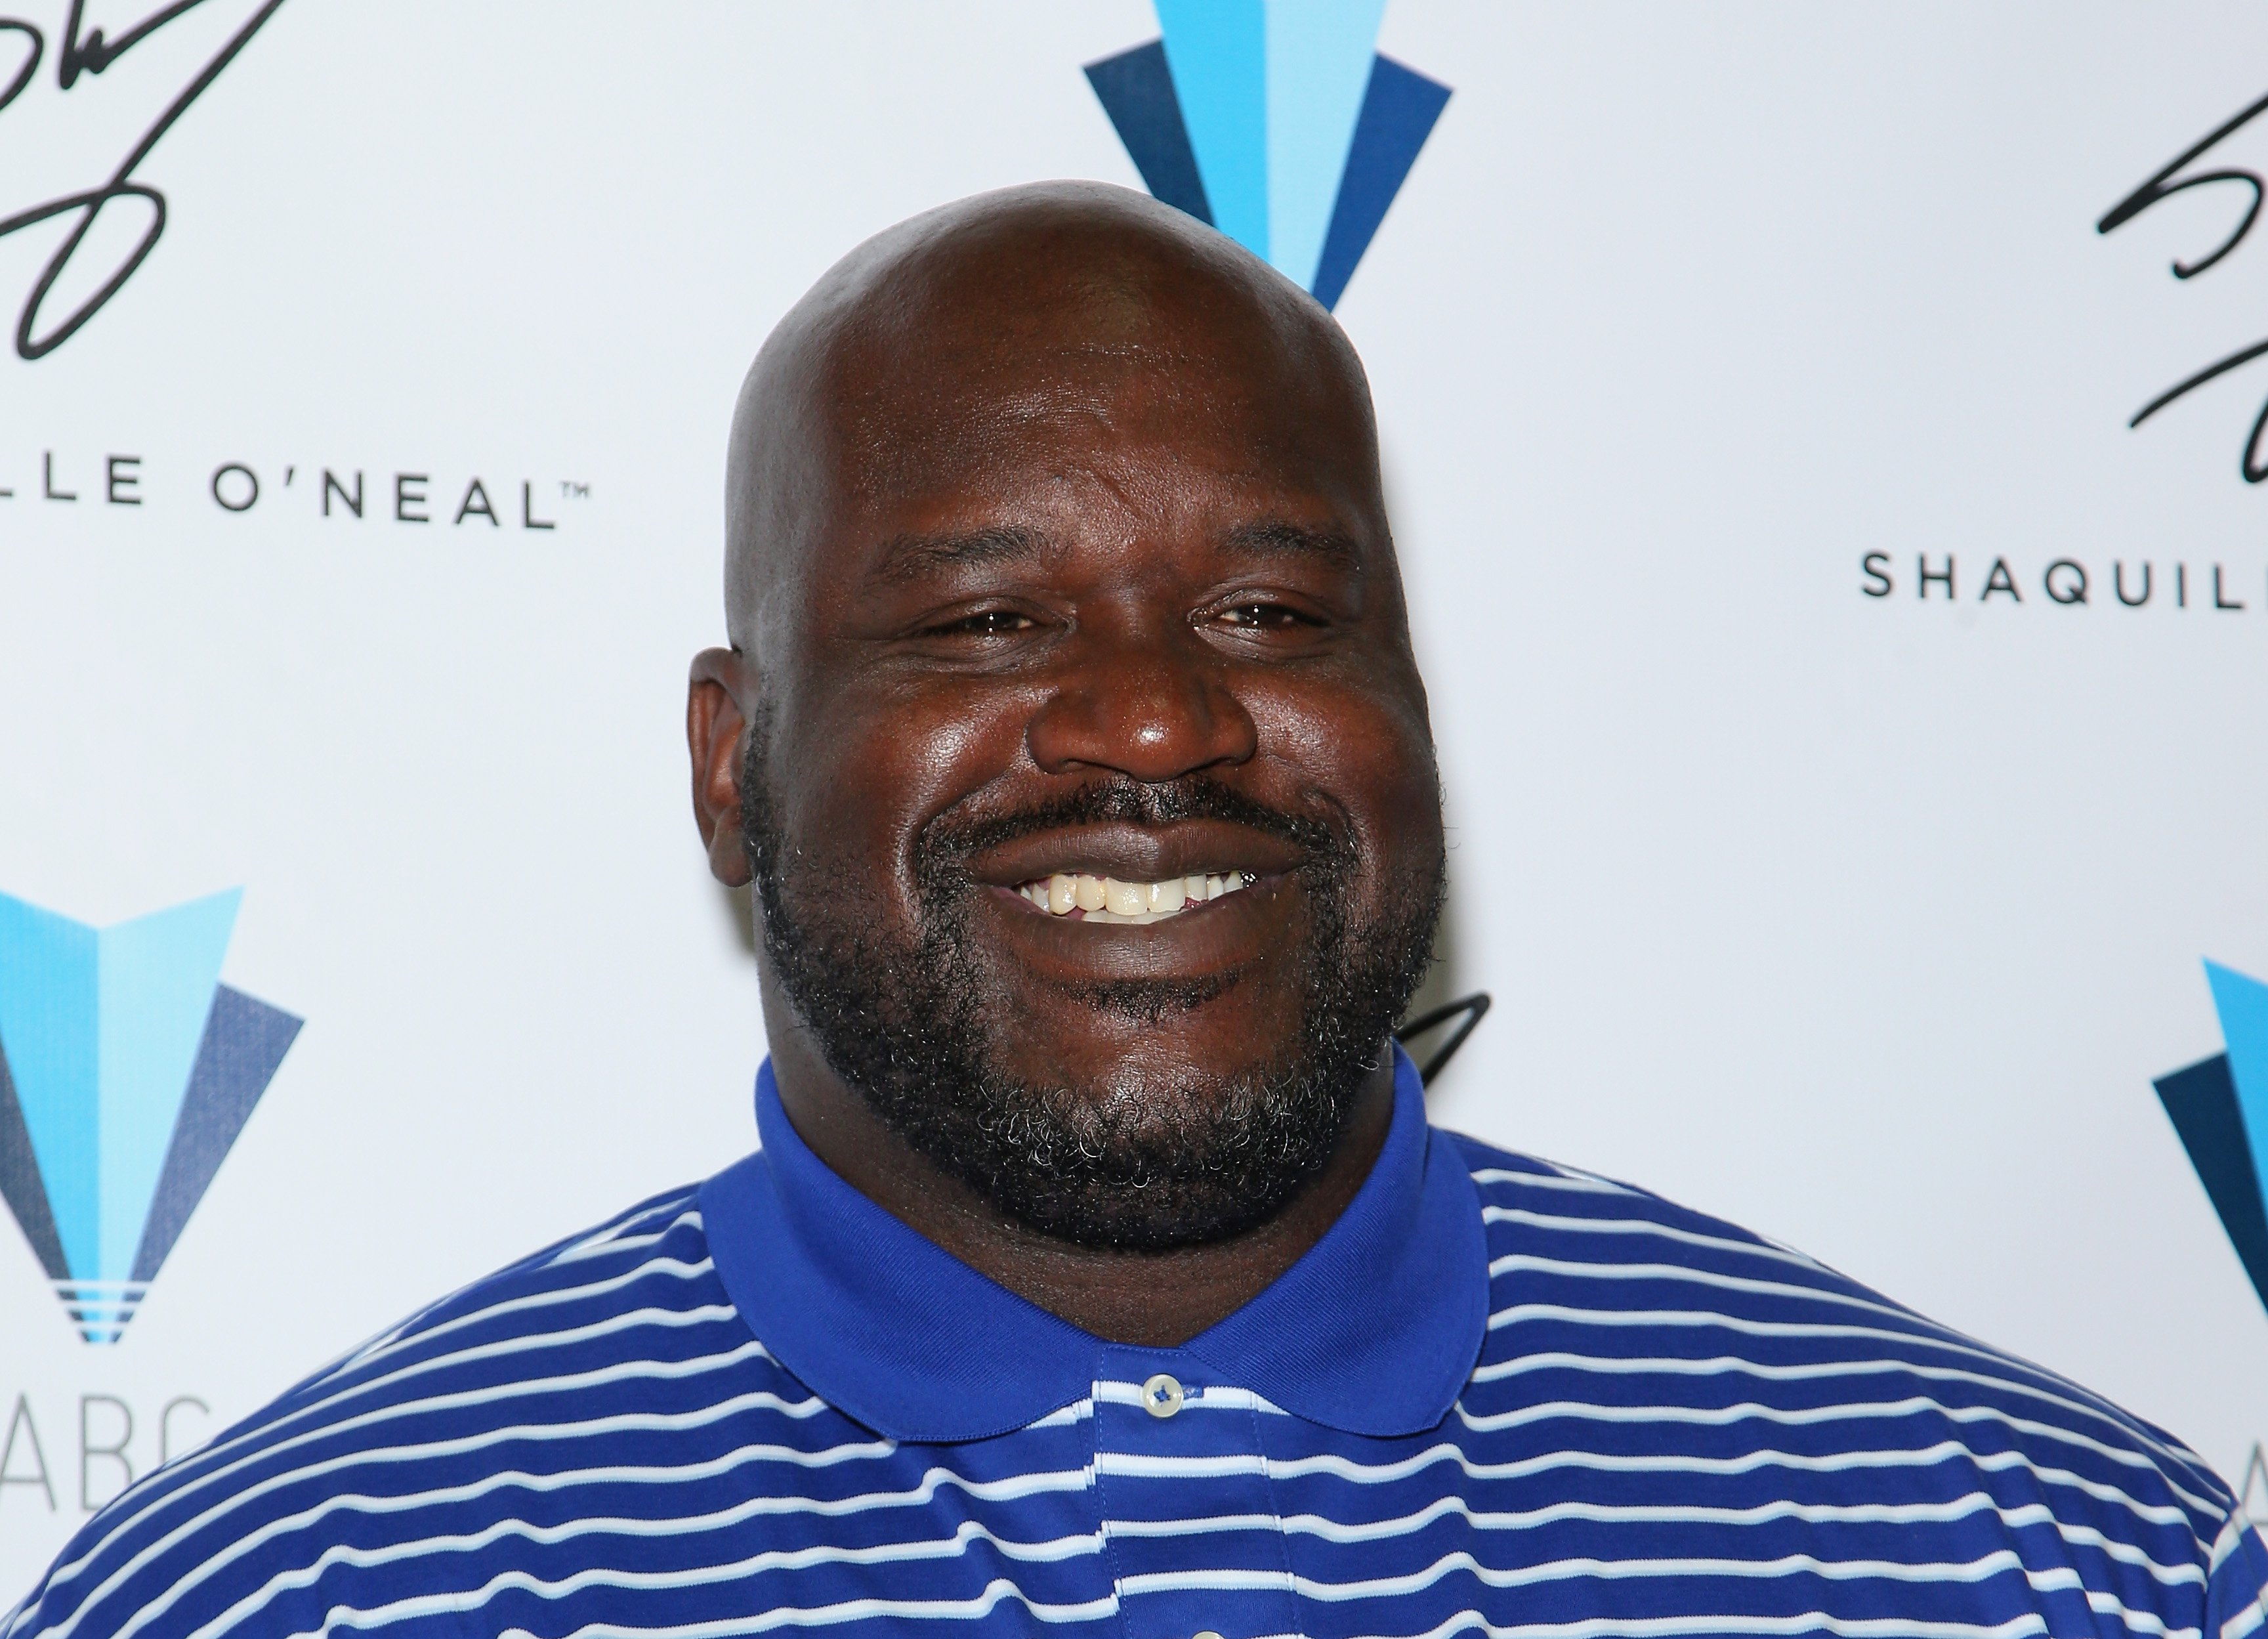 Former NBA player Shaquille O'Neal poses in the Authentic Brands Group booth during the Licensing Expo 2016 at the Mandalay Bay Convention Center on June 21, 2016 | Photo: Getty Images